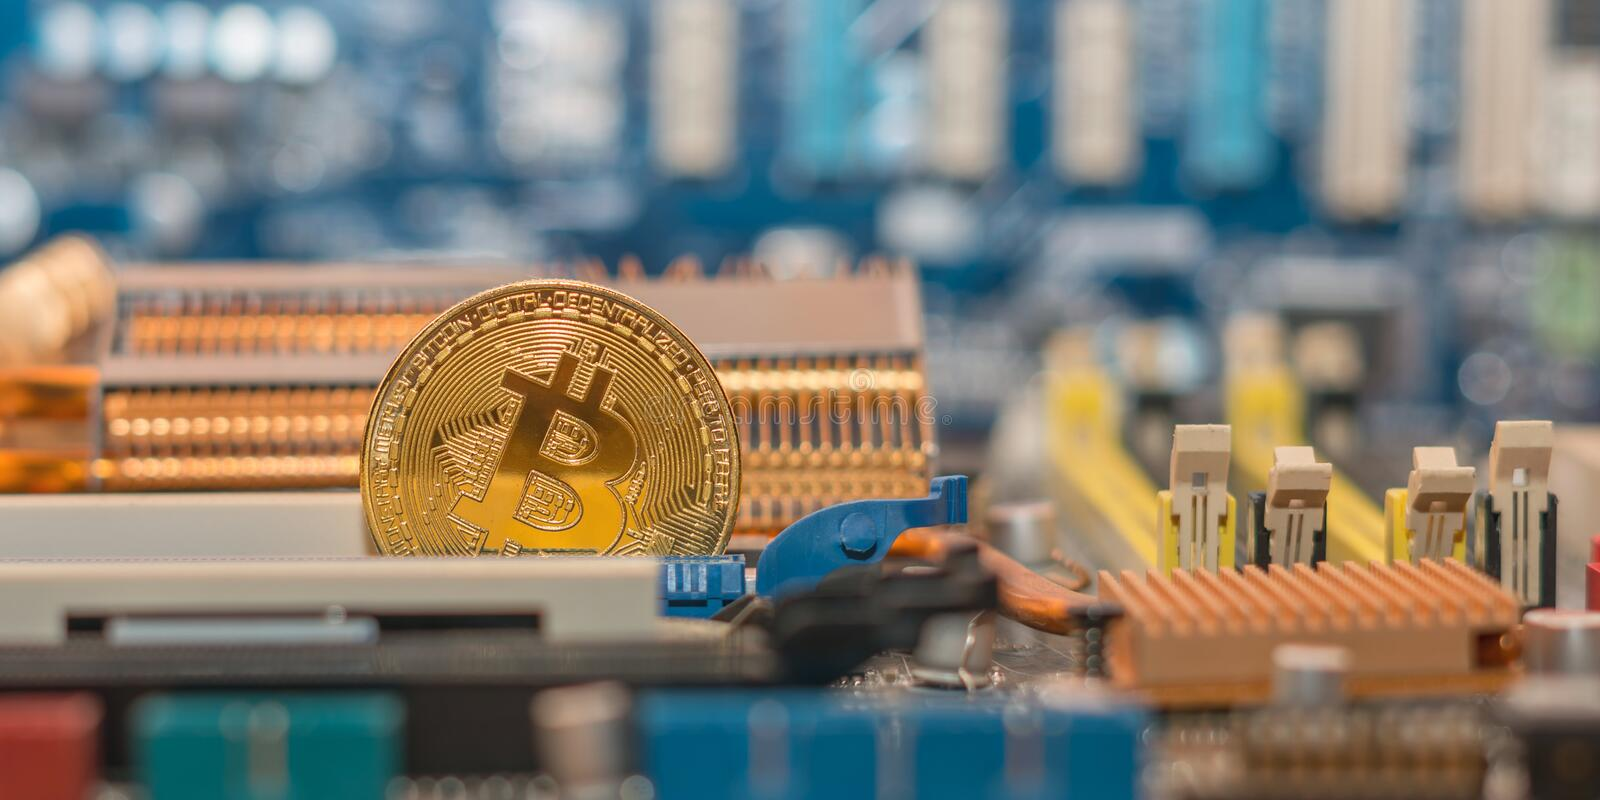 Modern blockchain technology, bitcoin coin on the computer motherboard. Modern blockchain technology, btc coin on the computer motherboard. Bitcoin and other stock image